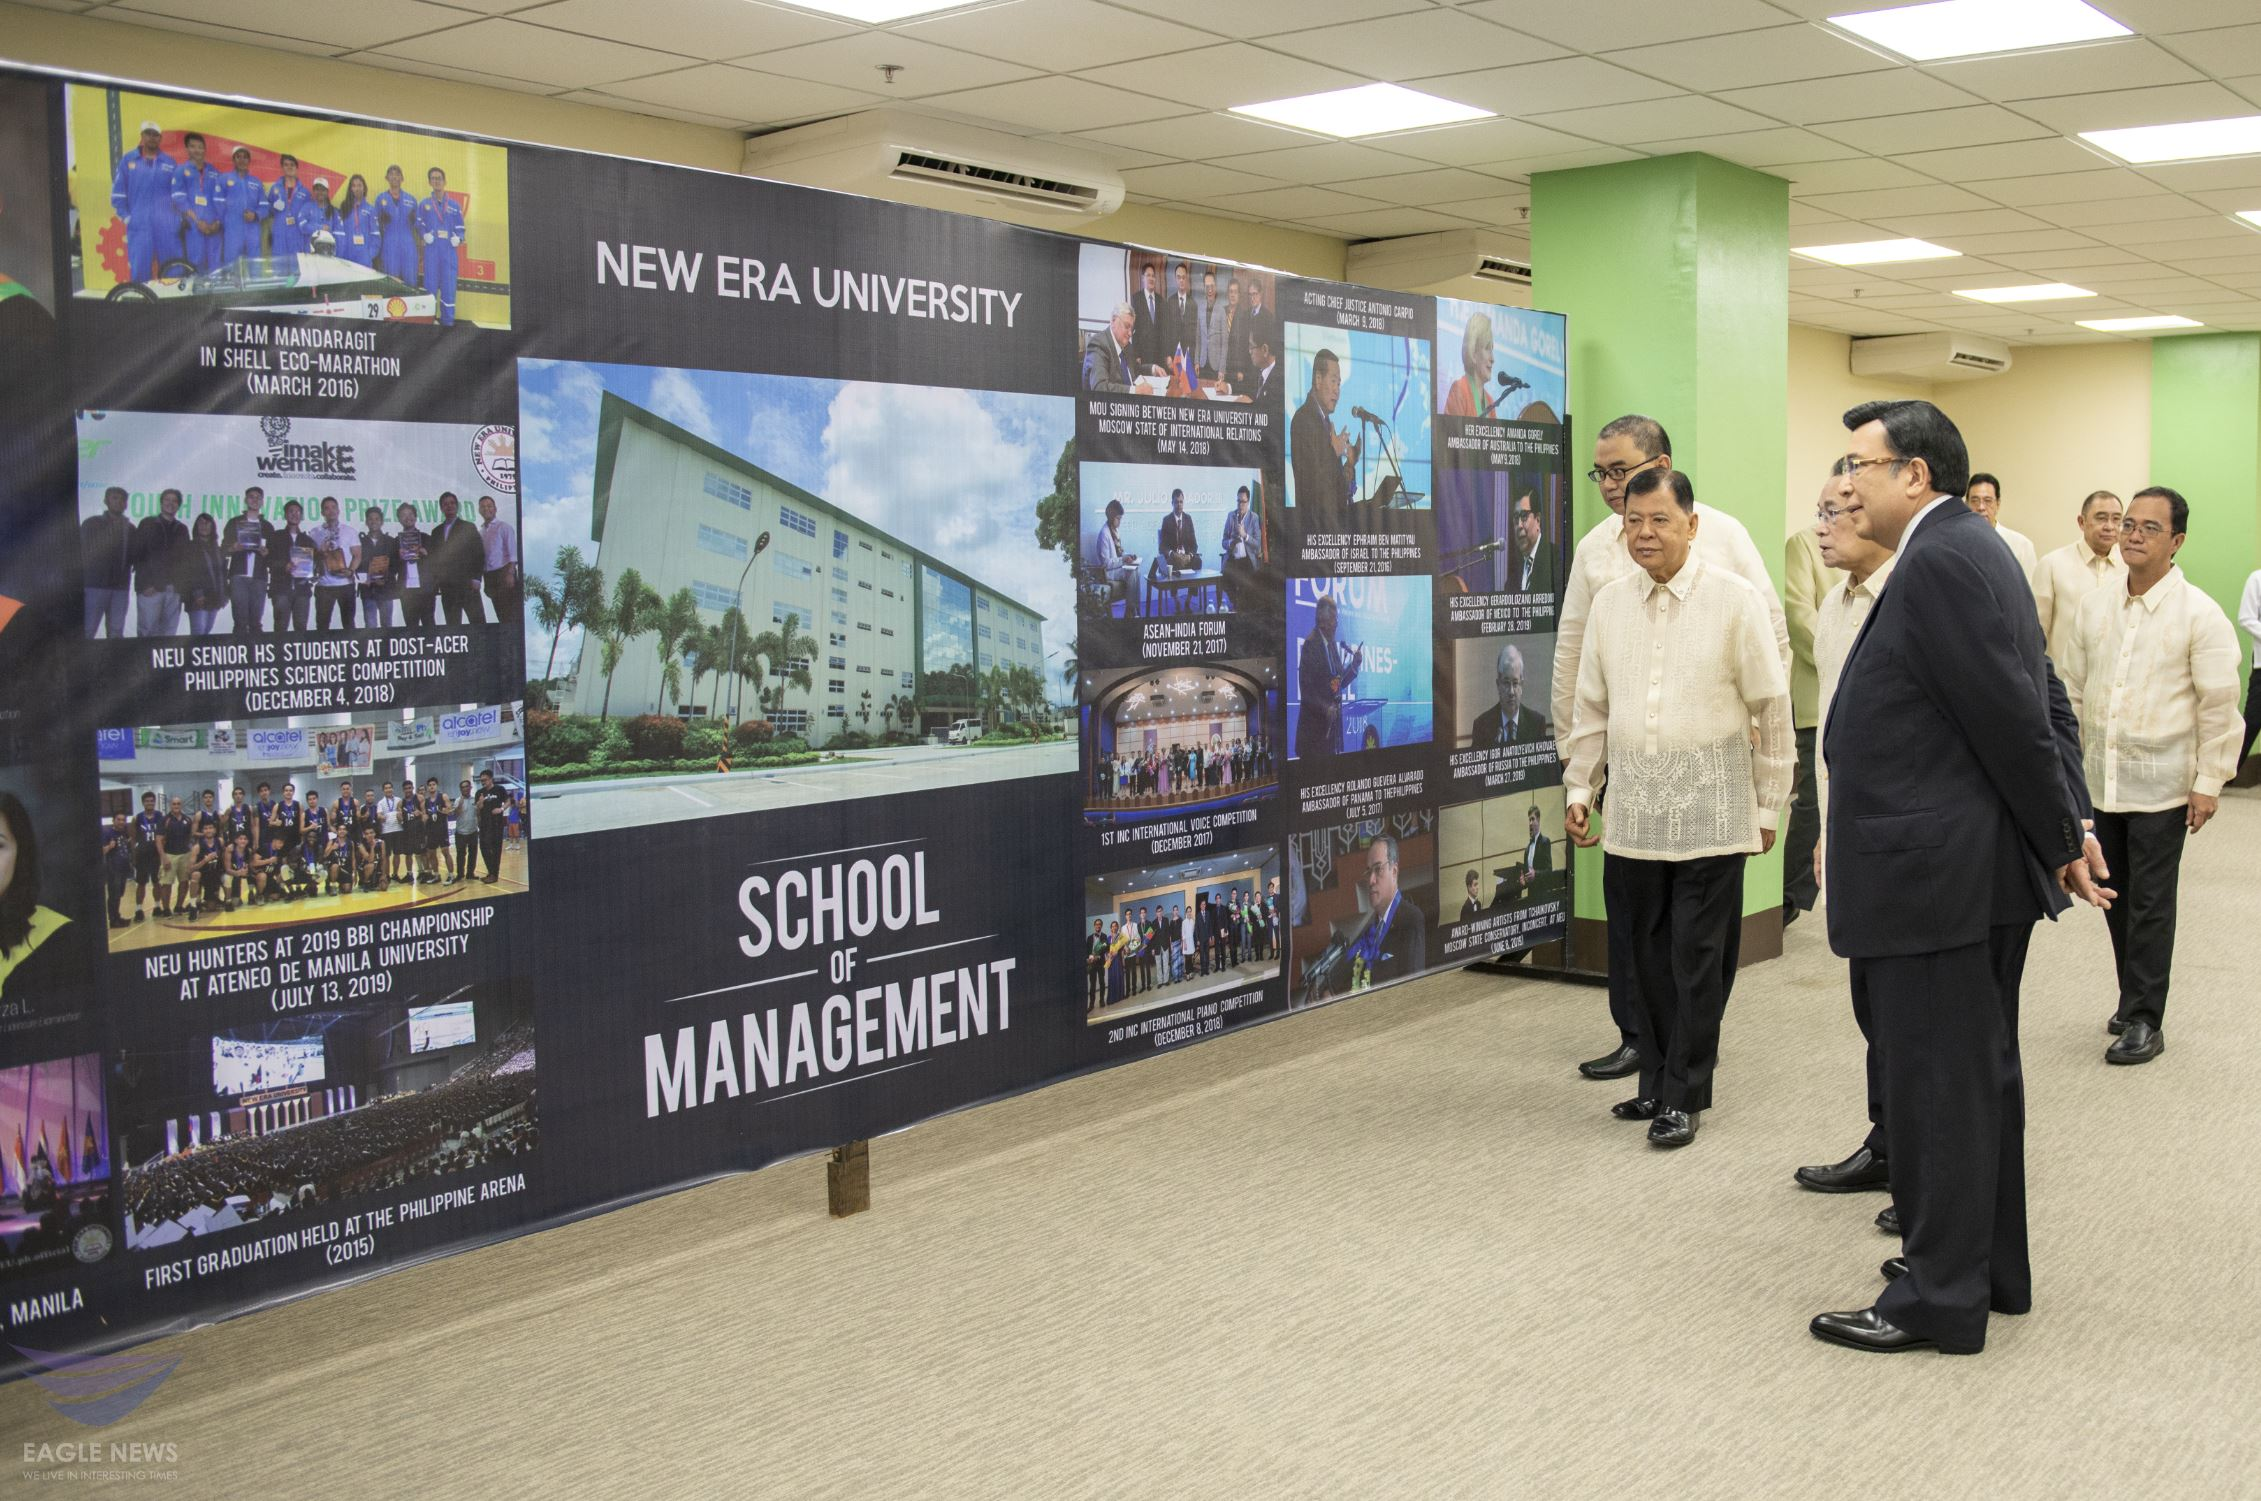 New Era University inaugurates School of Management building as